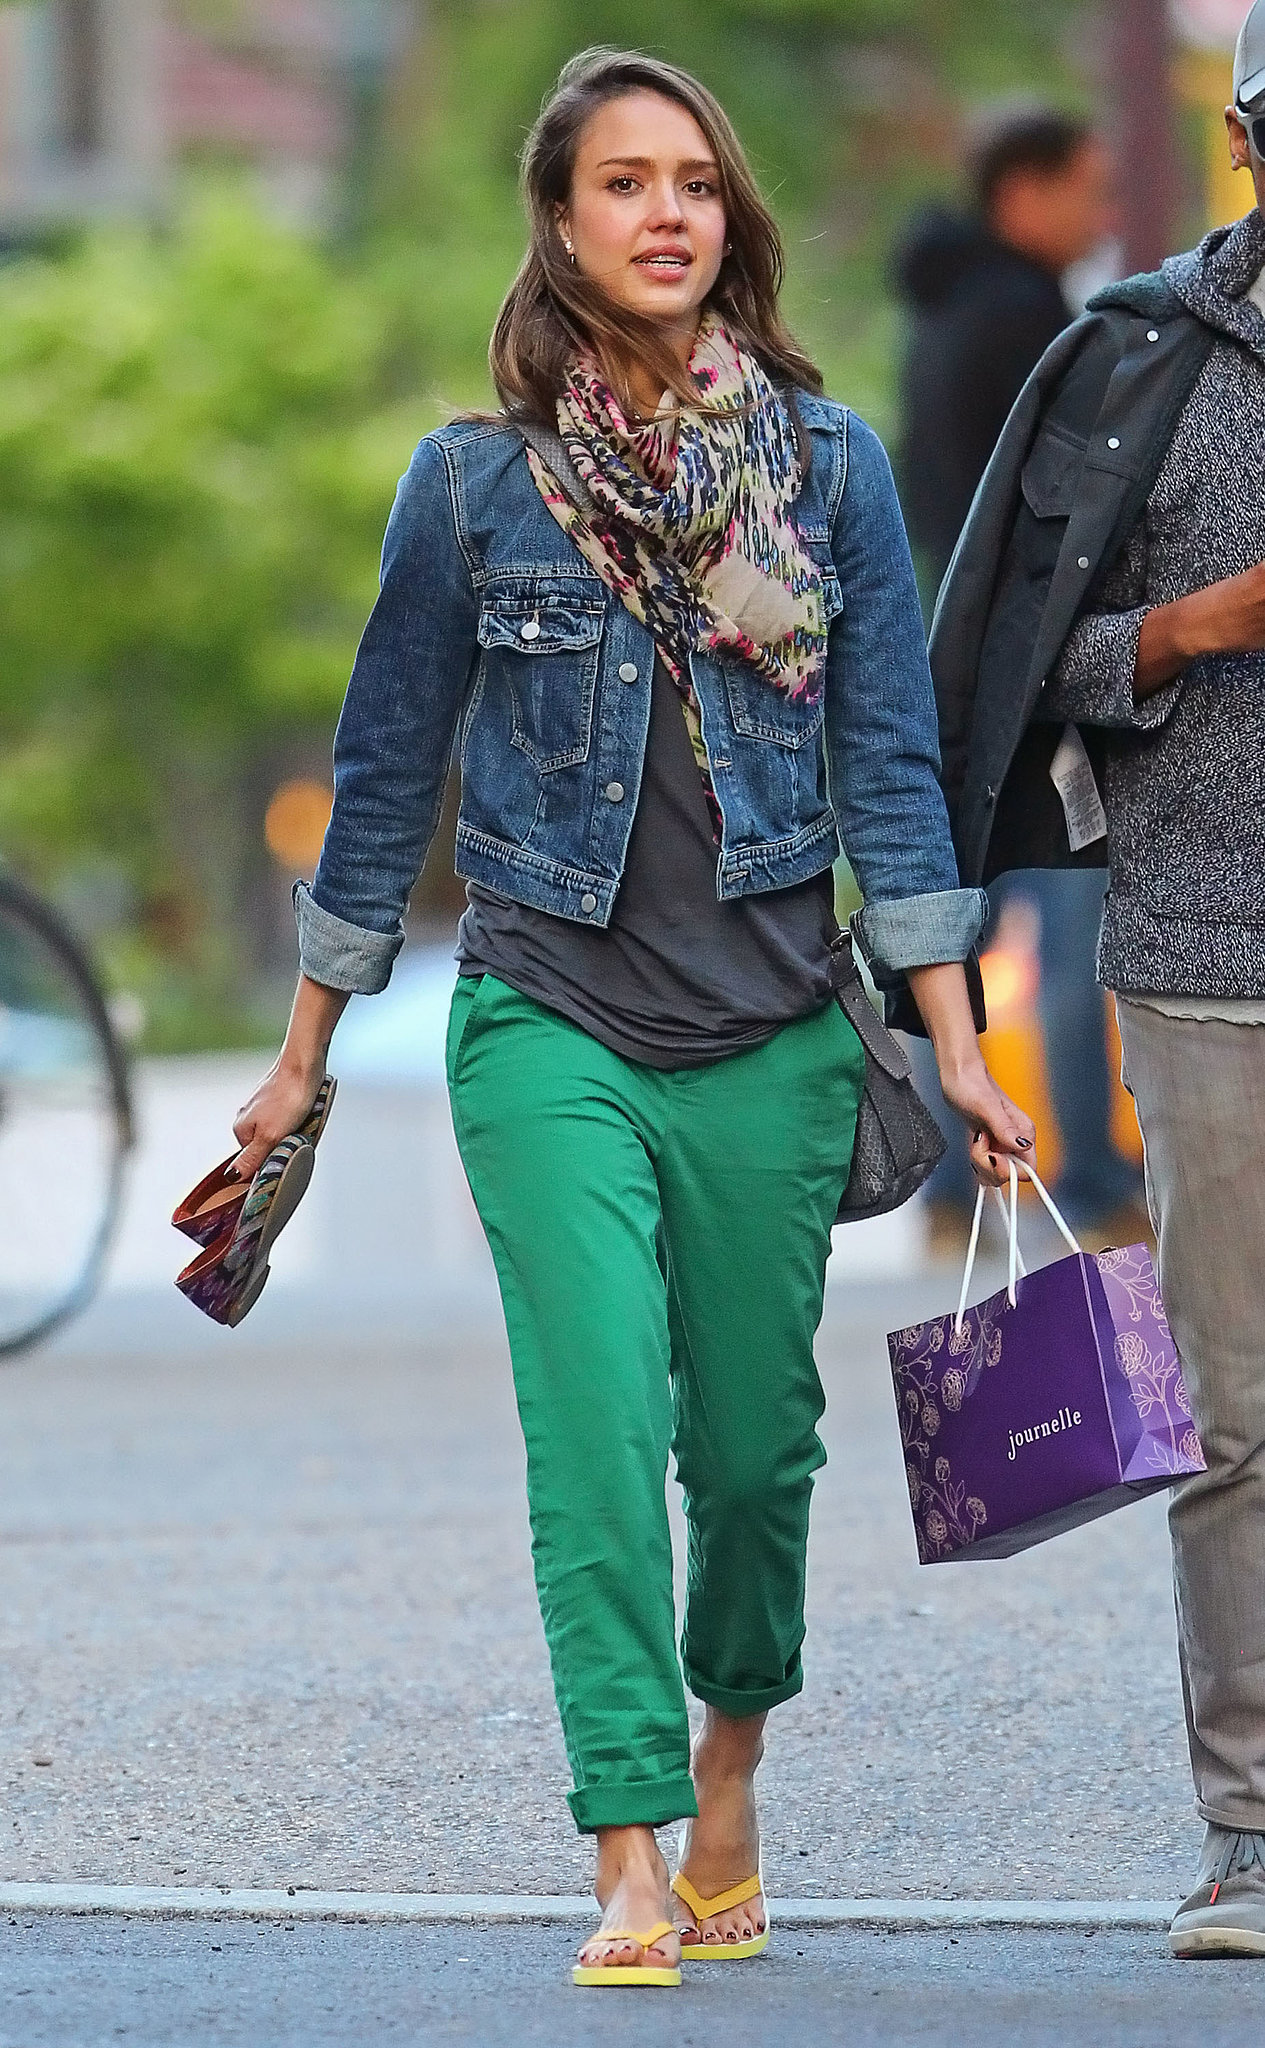 For a pedicure session in NYC, Alba swapped her colored denim for a classic jean jacket, preppy green pants, and a printed wrap scarf.